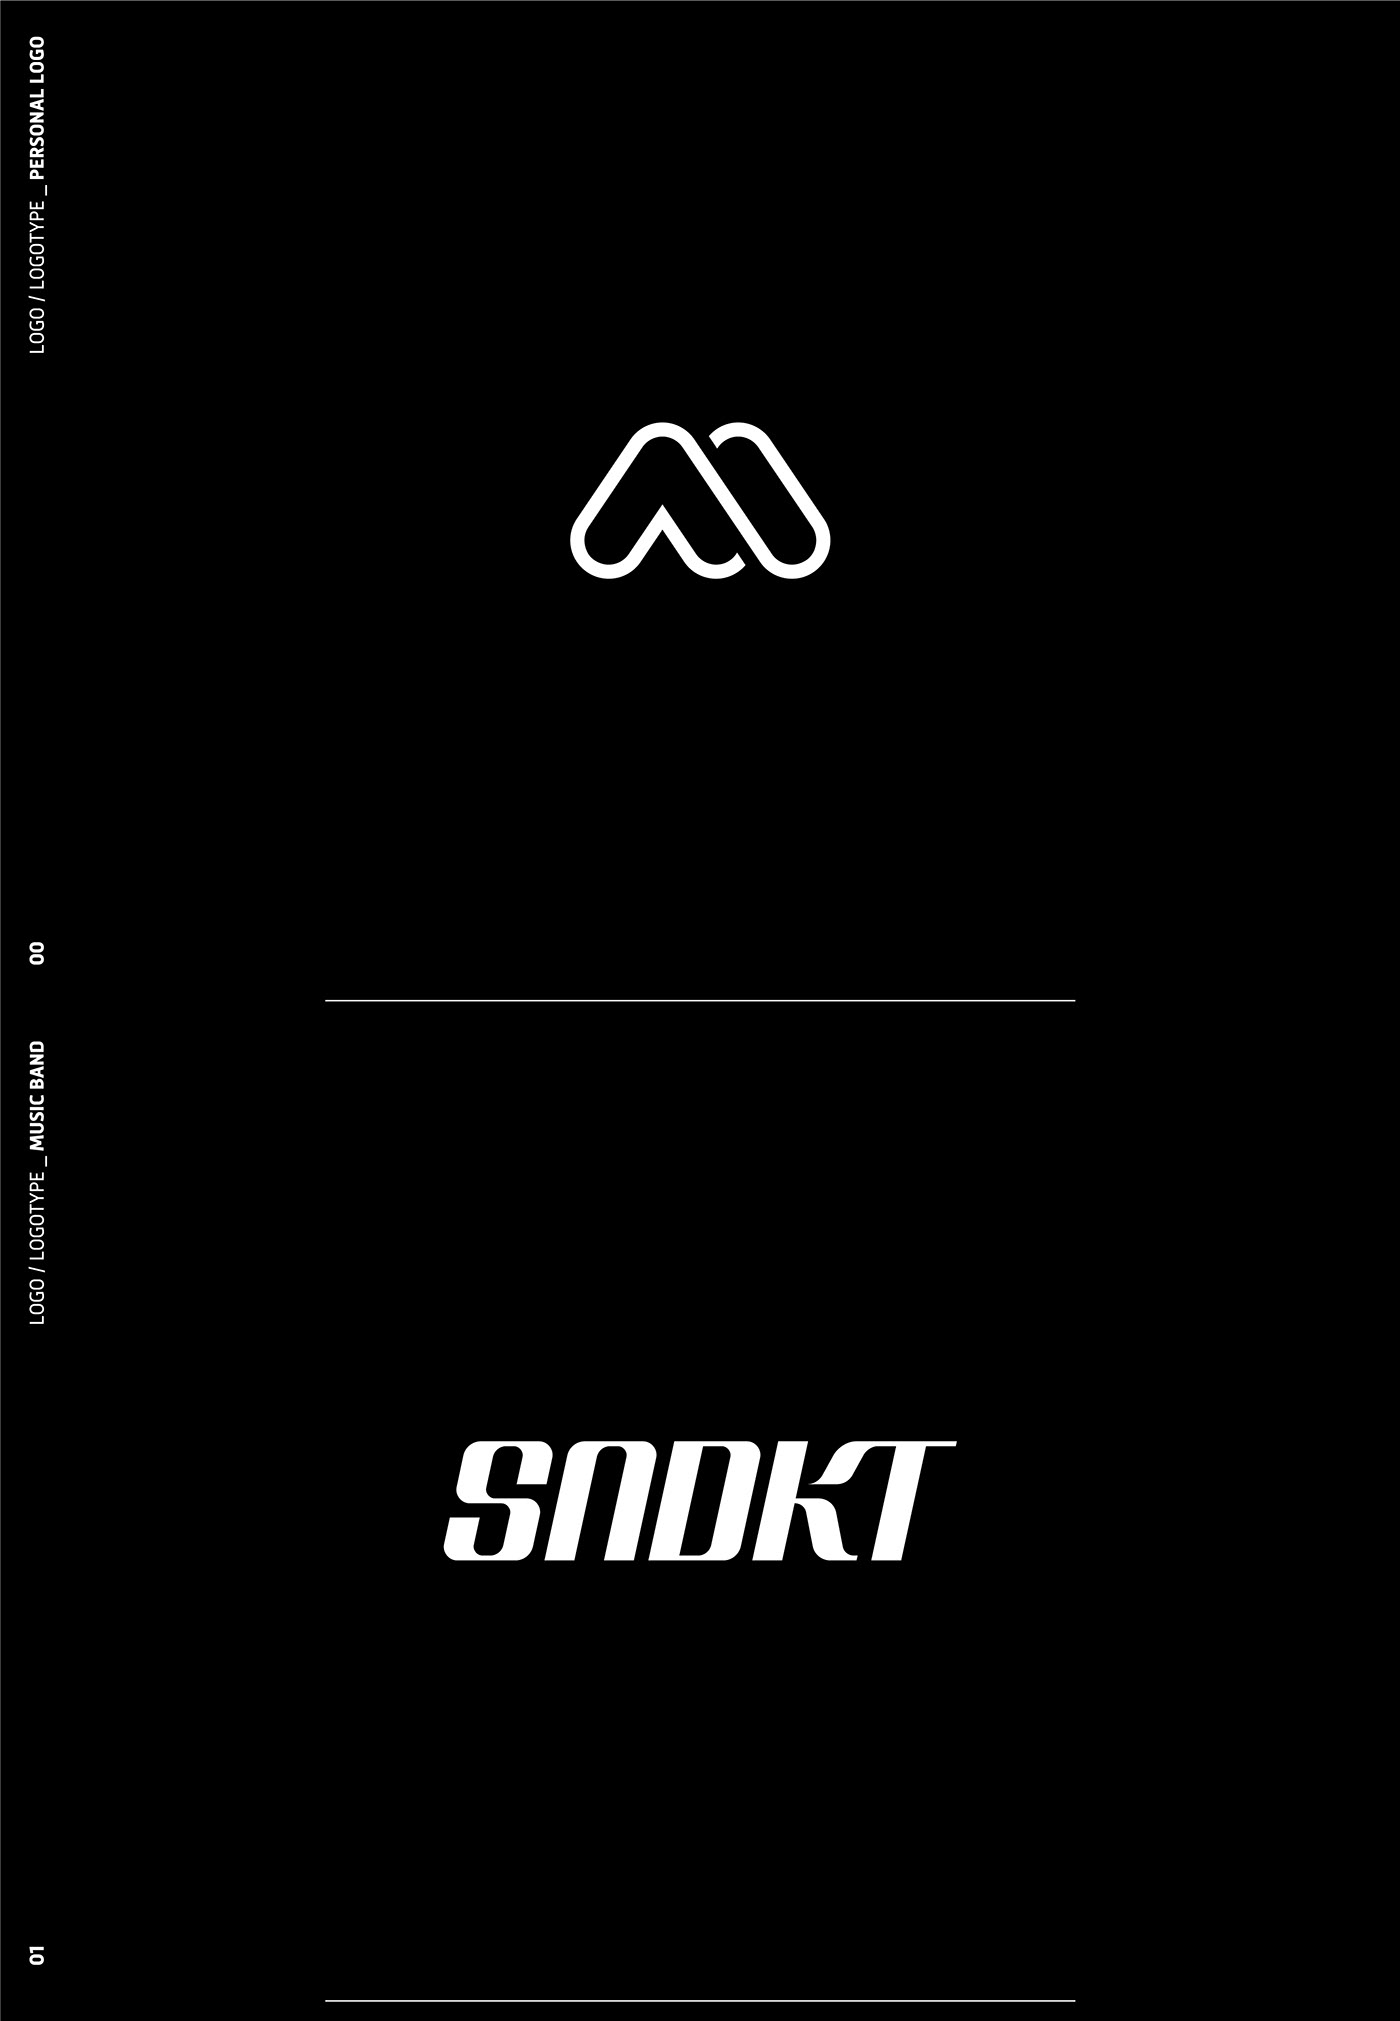 poster posters colour graphic design Minimalism print advertise geometry simple modern flat vector